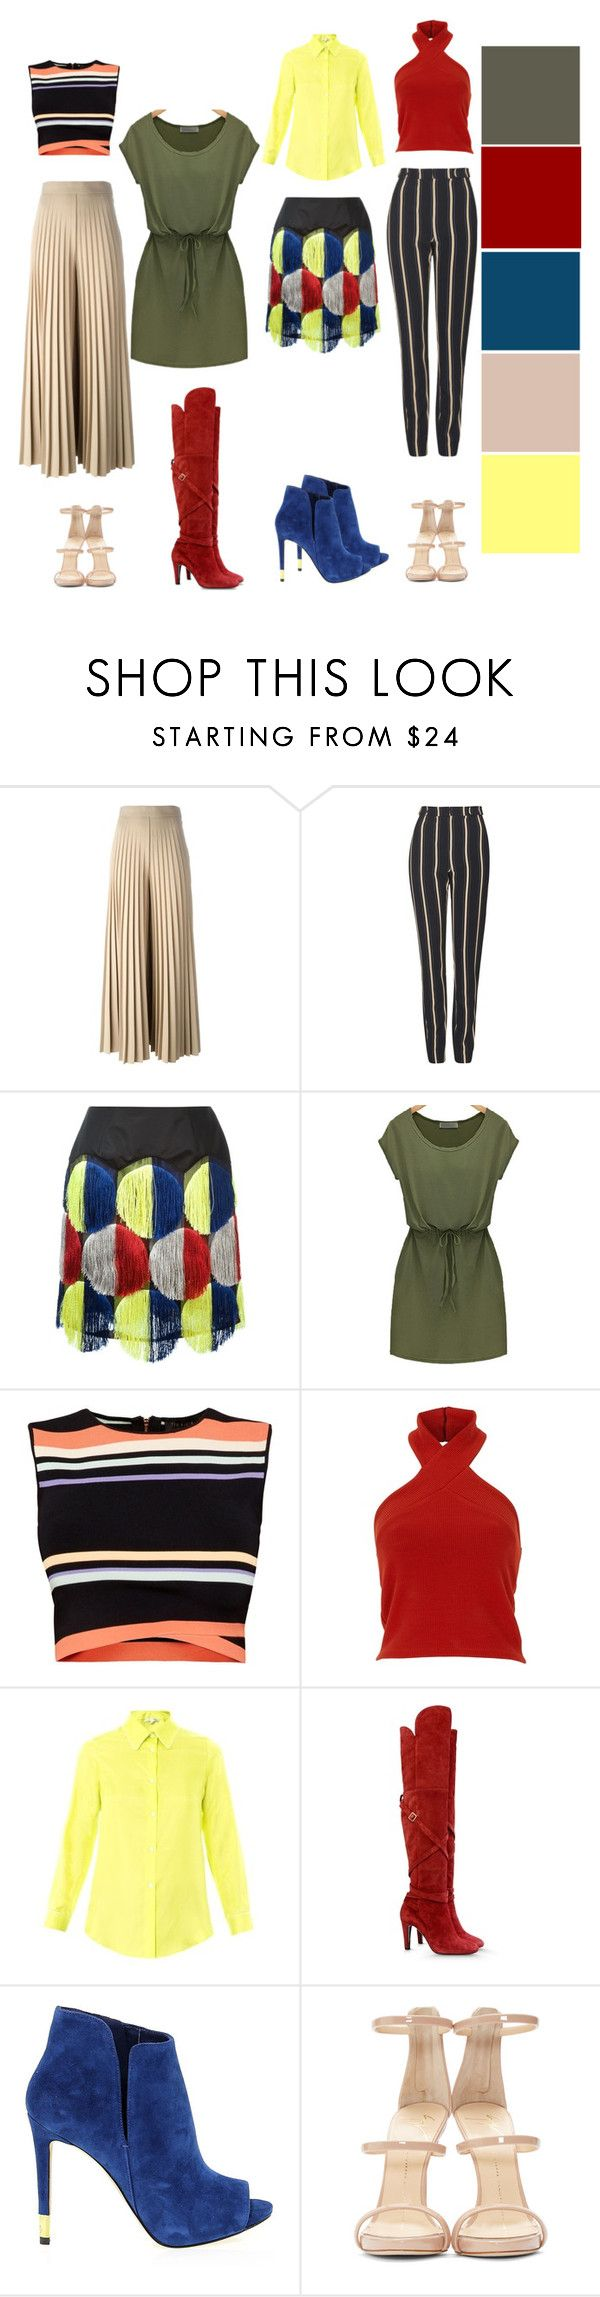 """""""Untitled #352"""" by theclothesmind on Polyvore featuring Givenchy, Topshop, Marco de Vincenzo, Ted Baker, Raphaëlla Riboud, Alberta Ferretti, GUESS, Giuseppe Zanotti, women's clothing and women"""